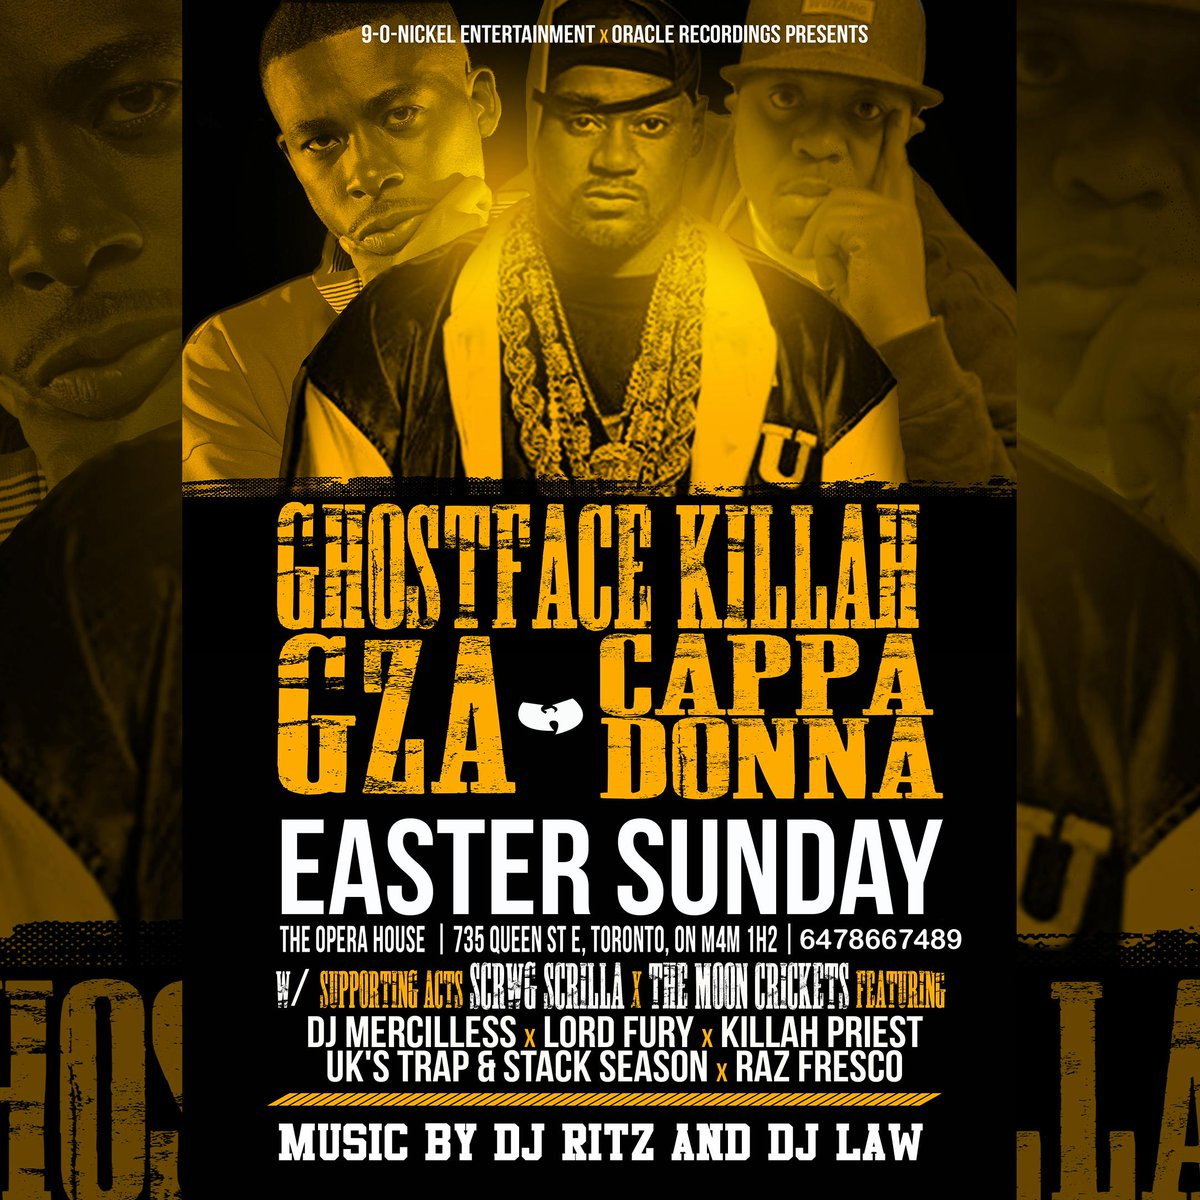 GHOSTFACE / GZA / CAPPADONNA LIVE EASTER SUNDAY INSIDE THE OPERA HOUSE HIT ME FOR TICKETS 6478667489 http://t.co/HkXxgxRjLT